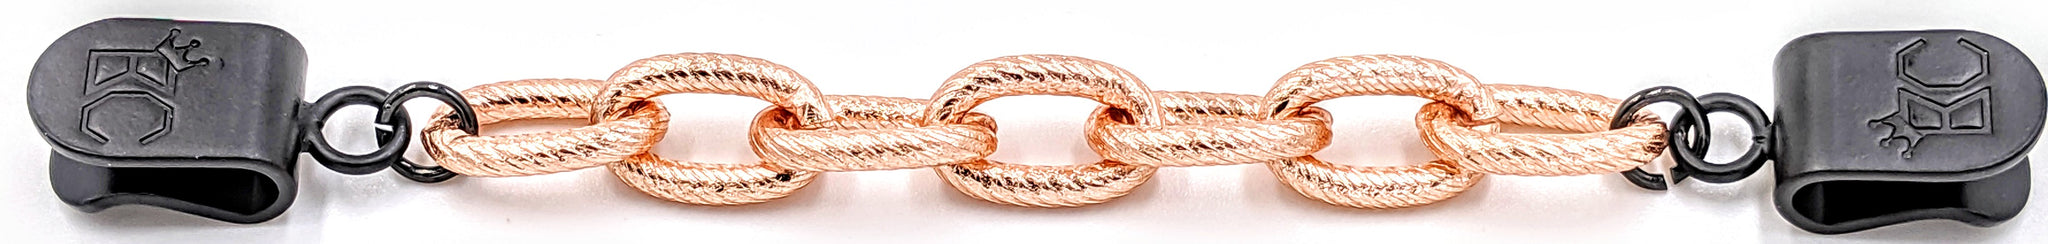 Braided Cable Chain